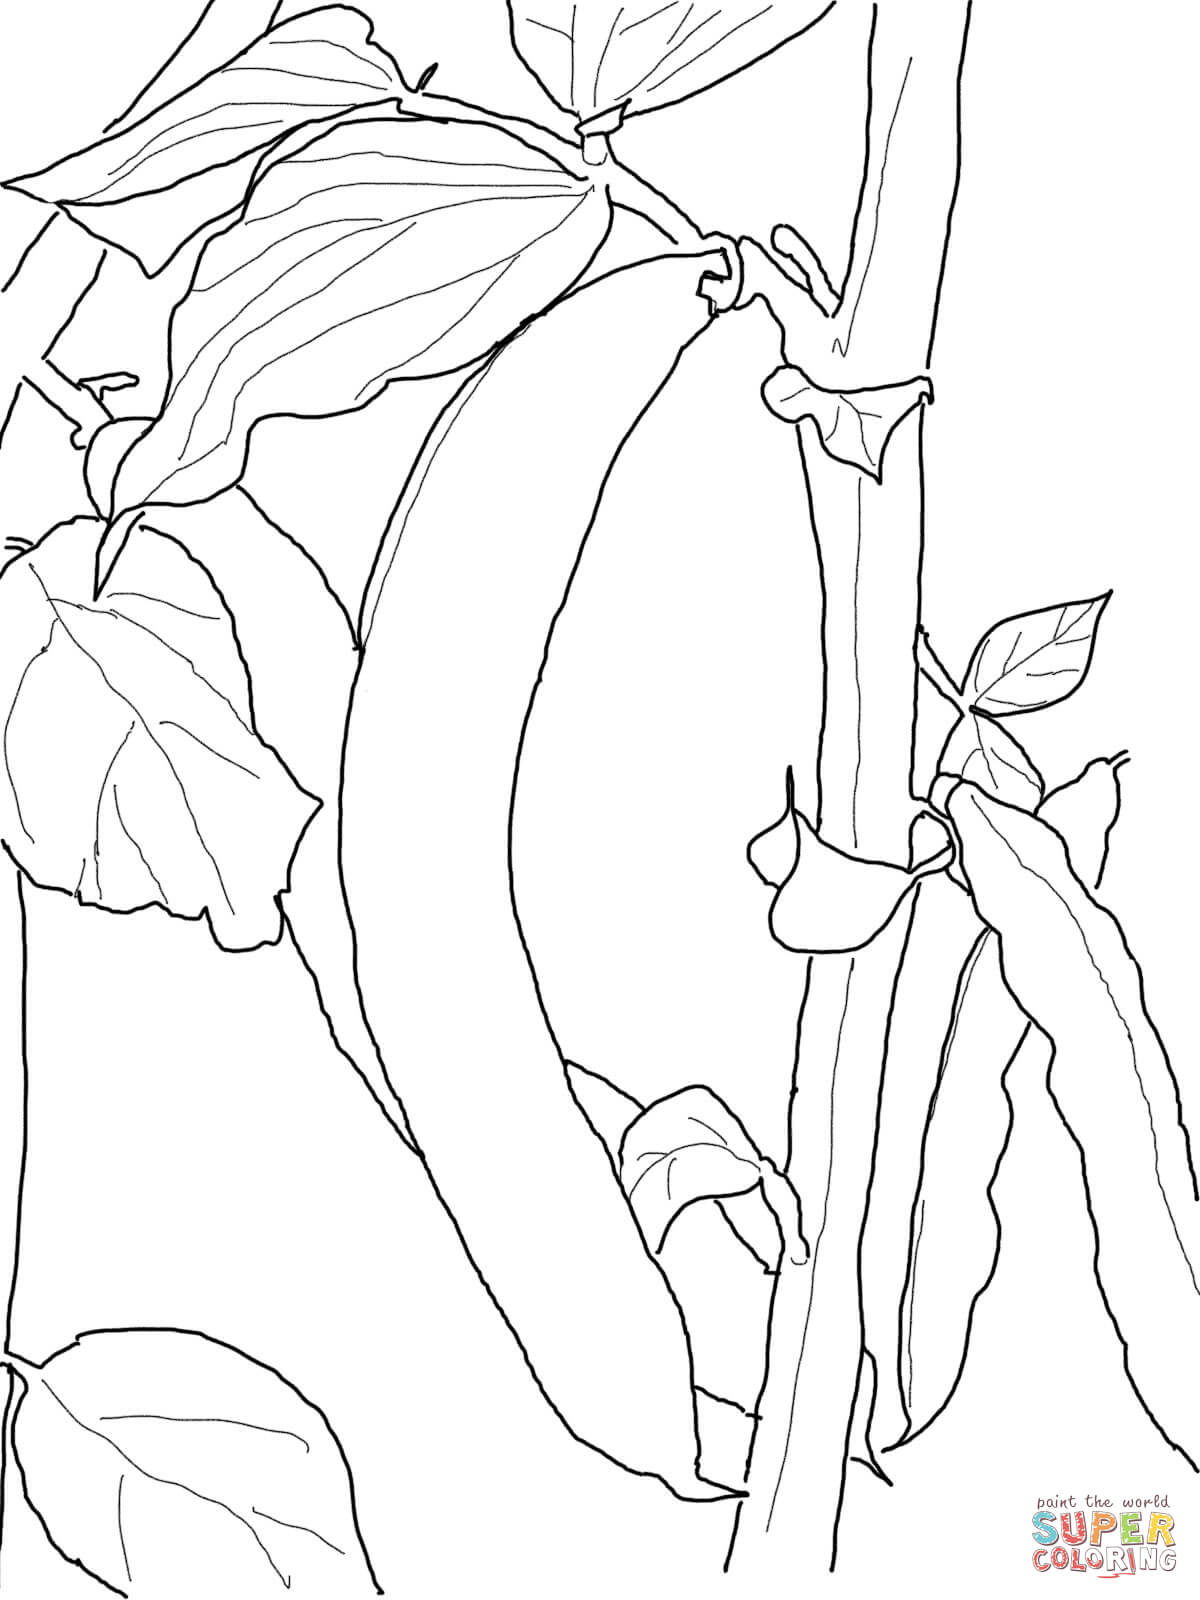 sprout thanksgiving printable coloring pages - photo#38